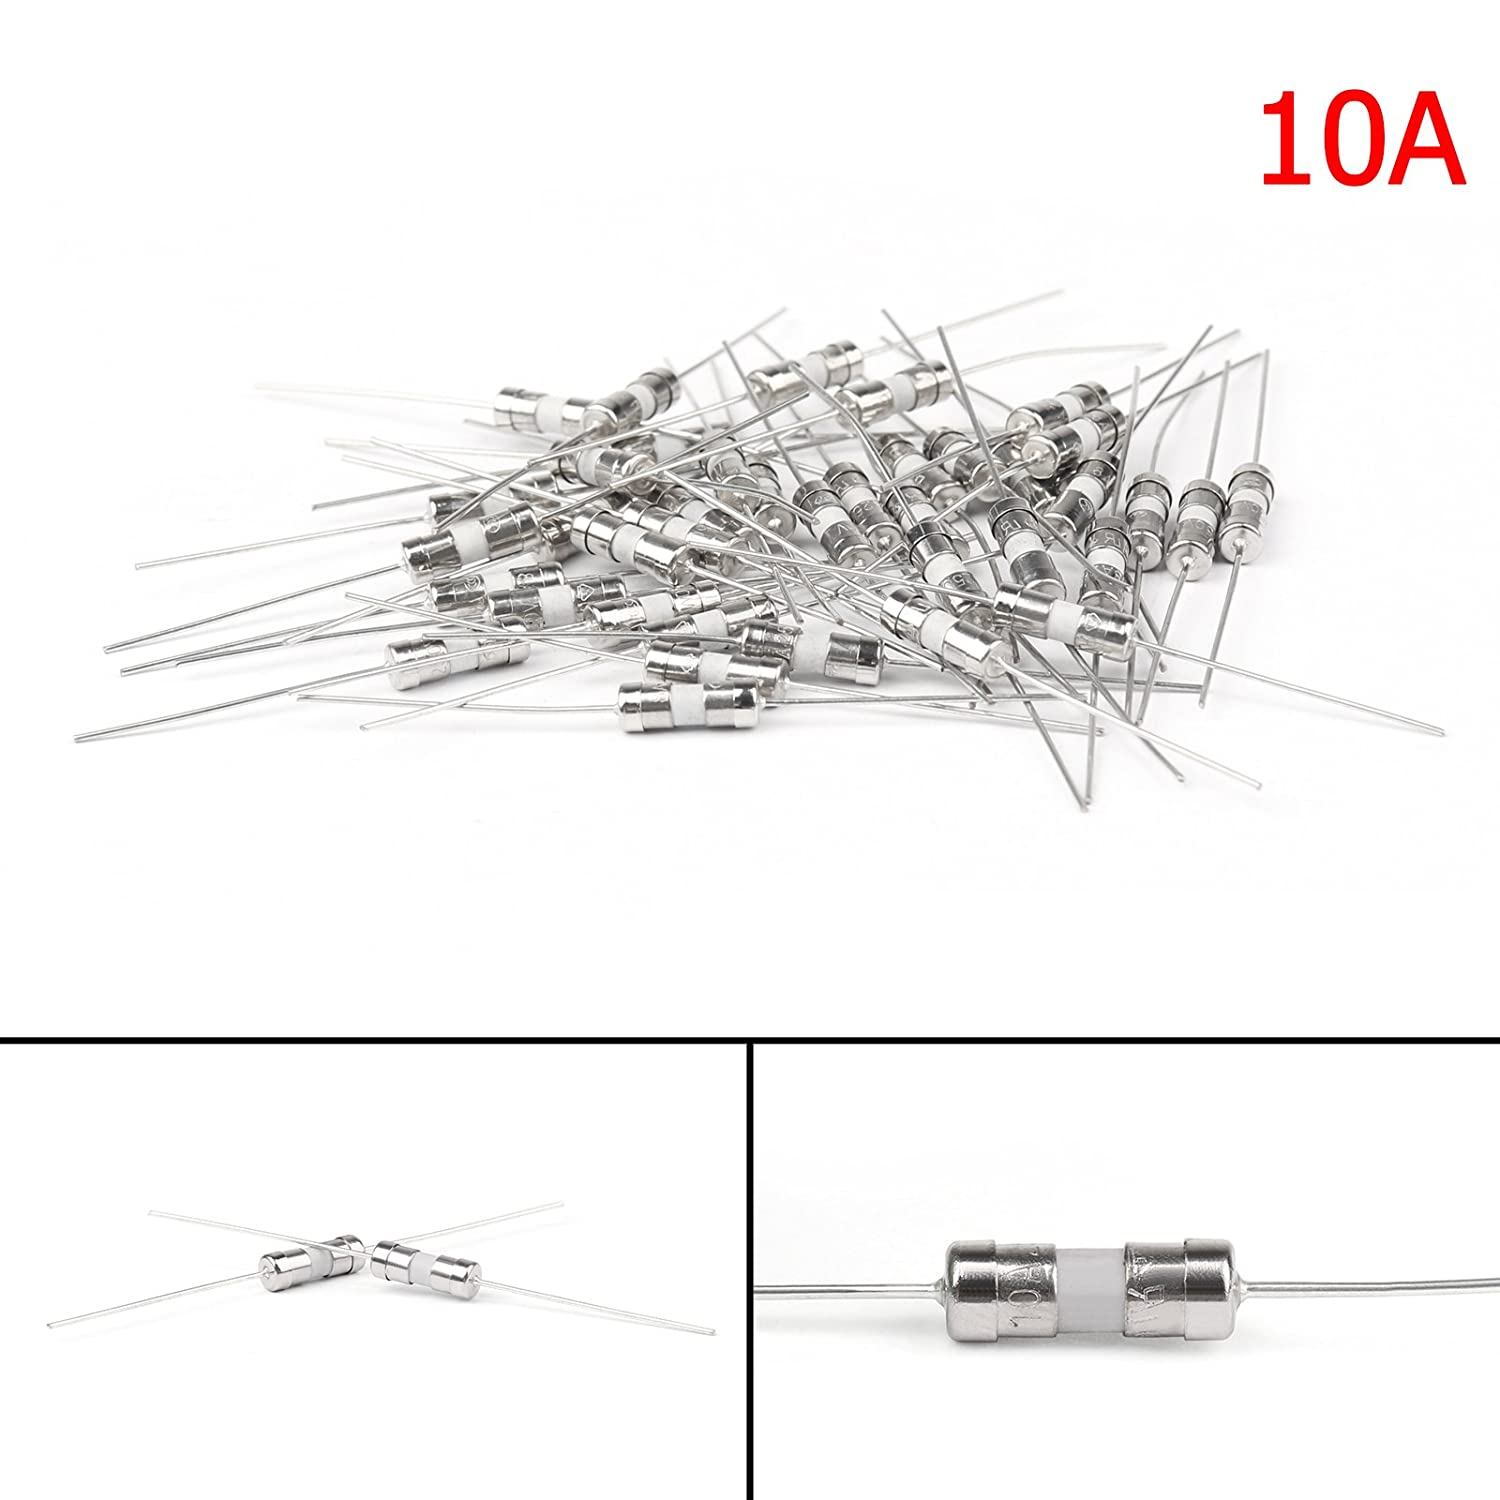 Areyourshop 40Pcs Ceramic Tube Fuse Metal Axial Lead Slow Blow Type Fuse 3.6x10mm 250V/10A E301-A081-10A-40P